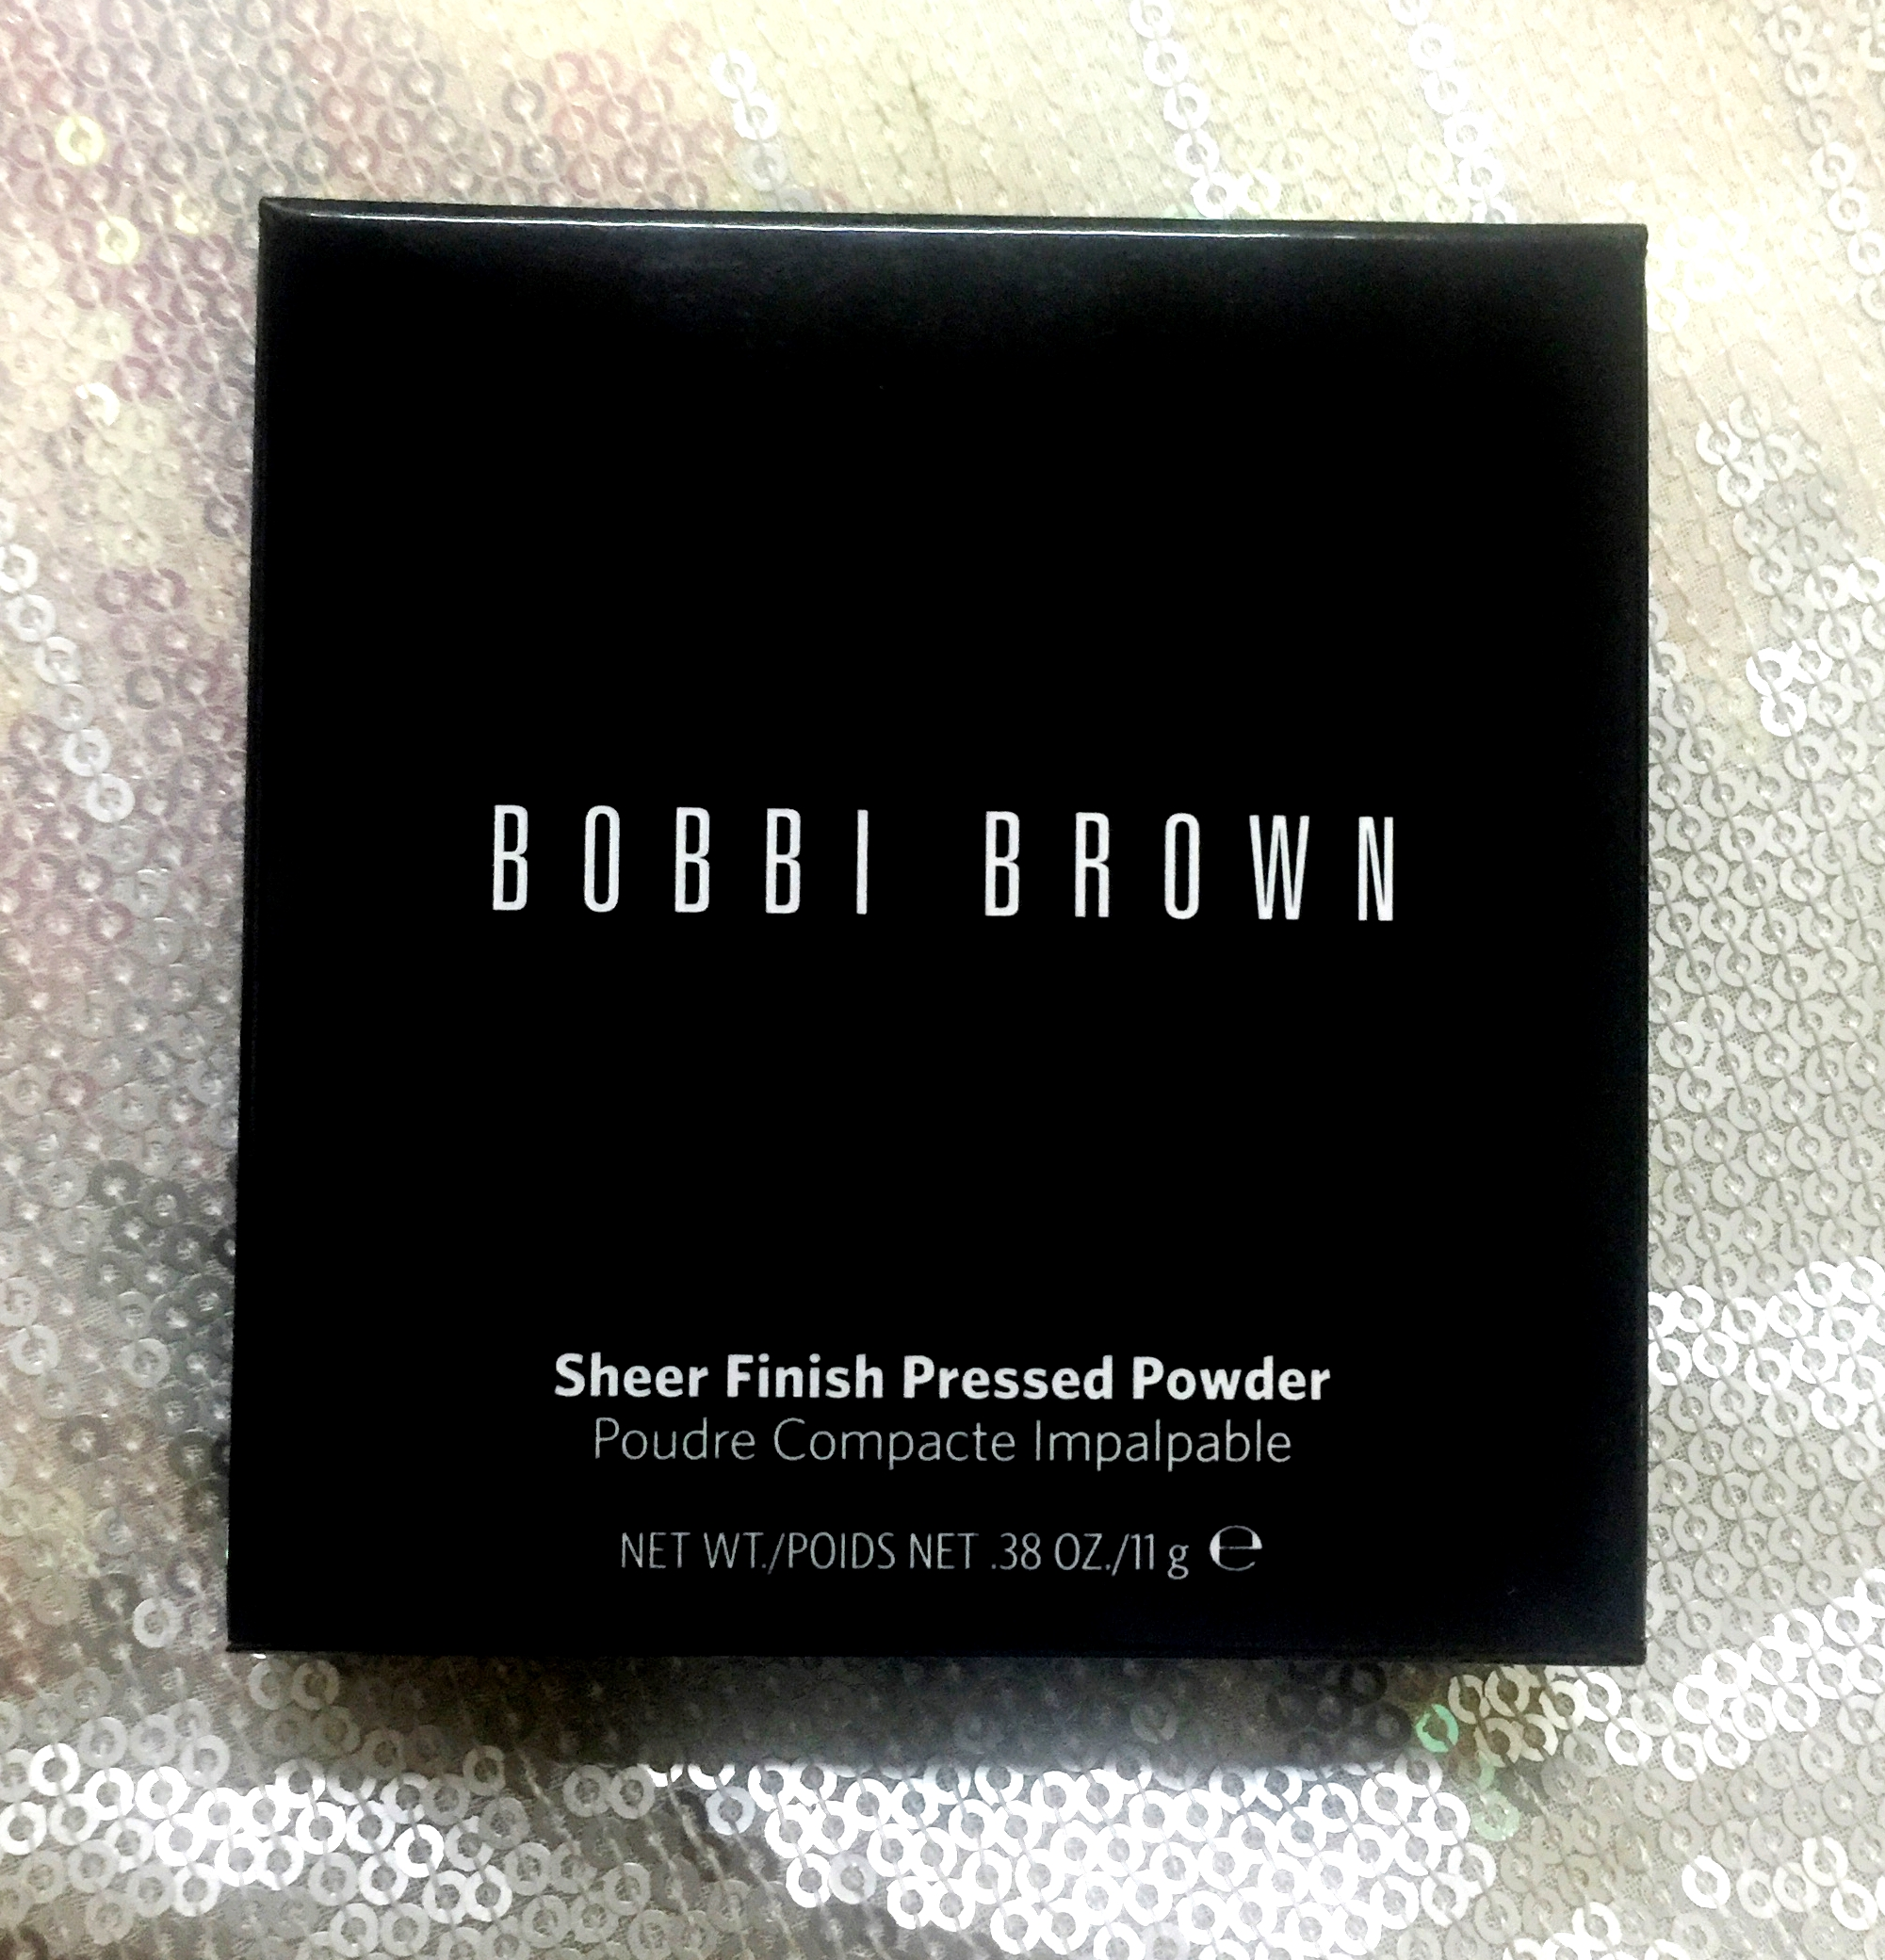 Sheer Finish Pressed Powder by Bobbi Brown Cosmetics #15